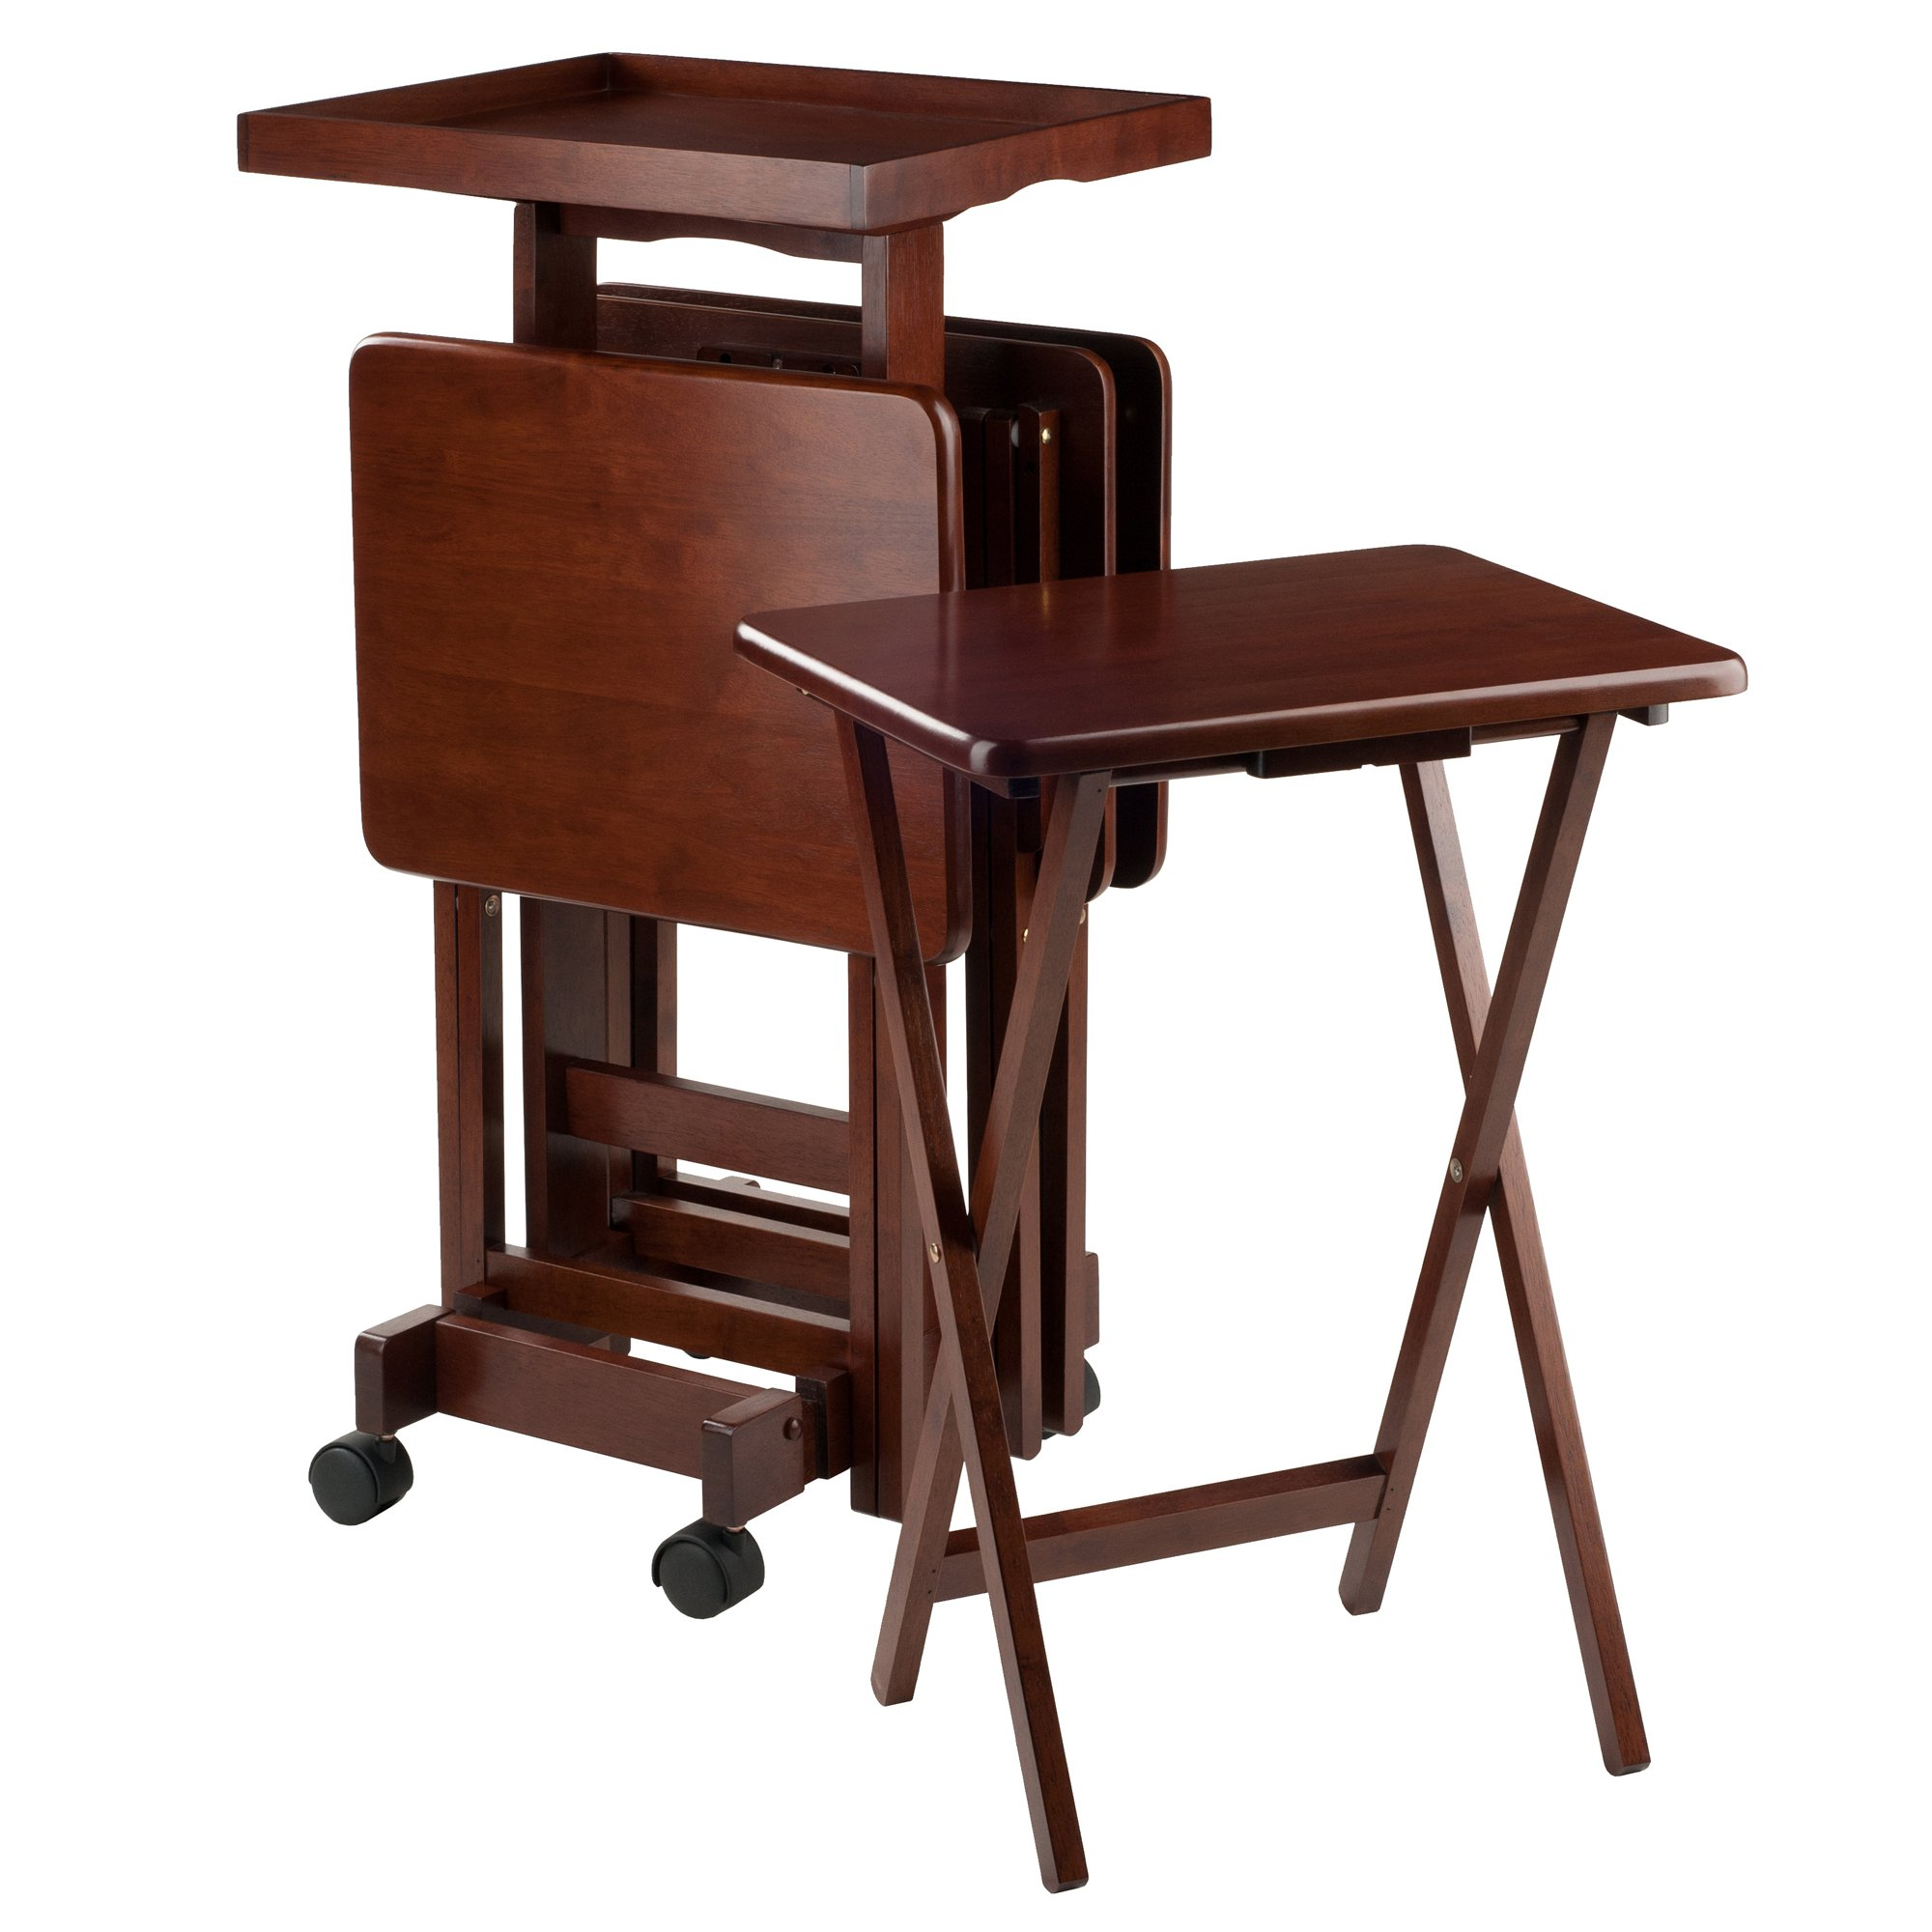 Winsome 94828 Isabelle Snack Table, Walnut by Winsome